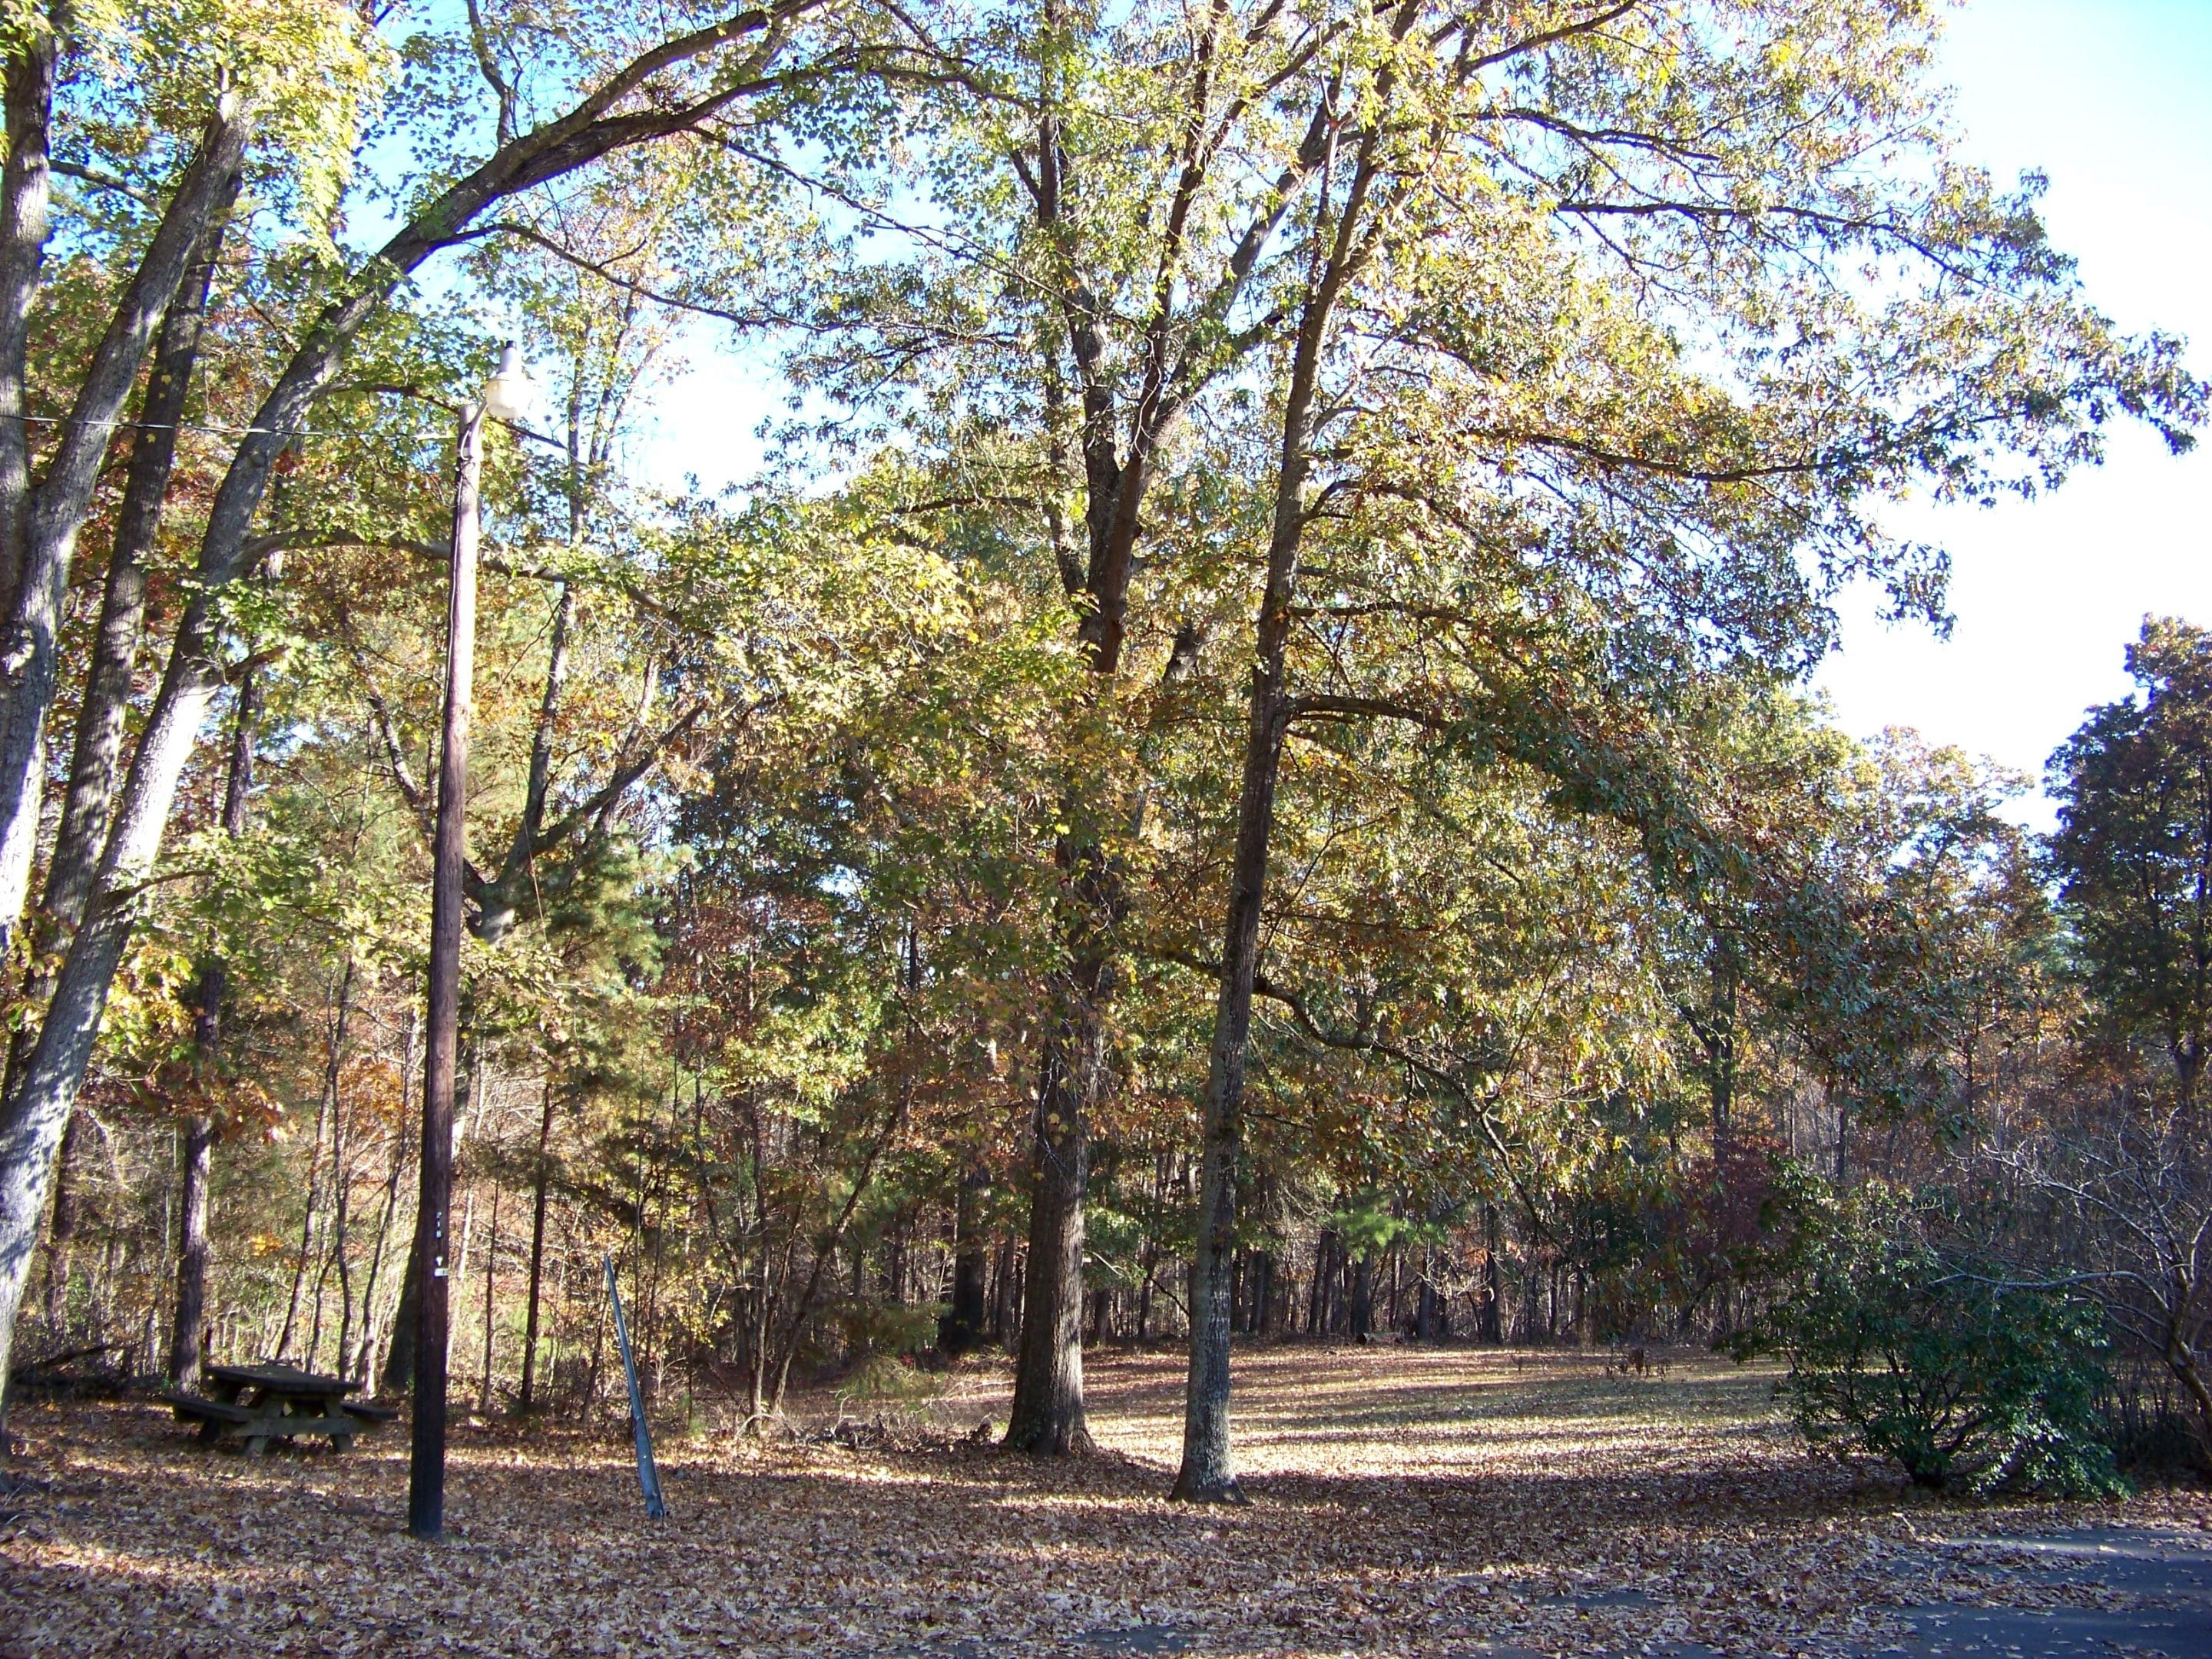 Trees in Uwharrie National Forest